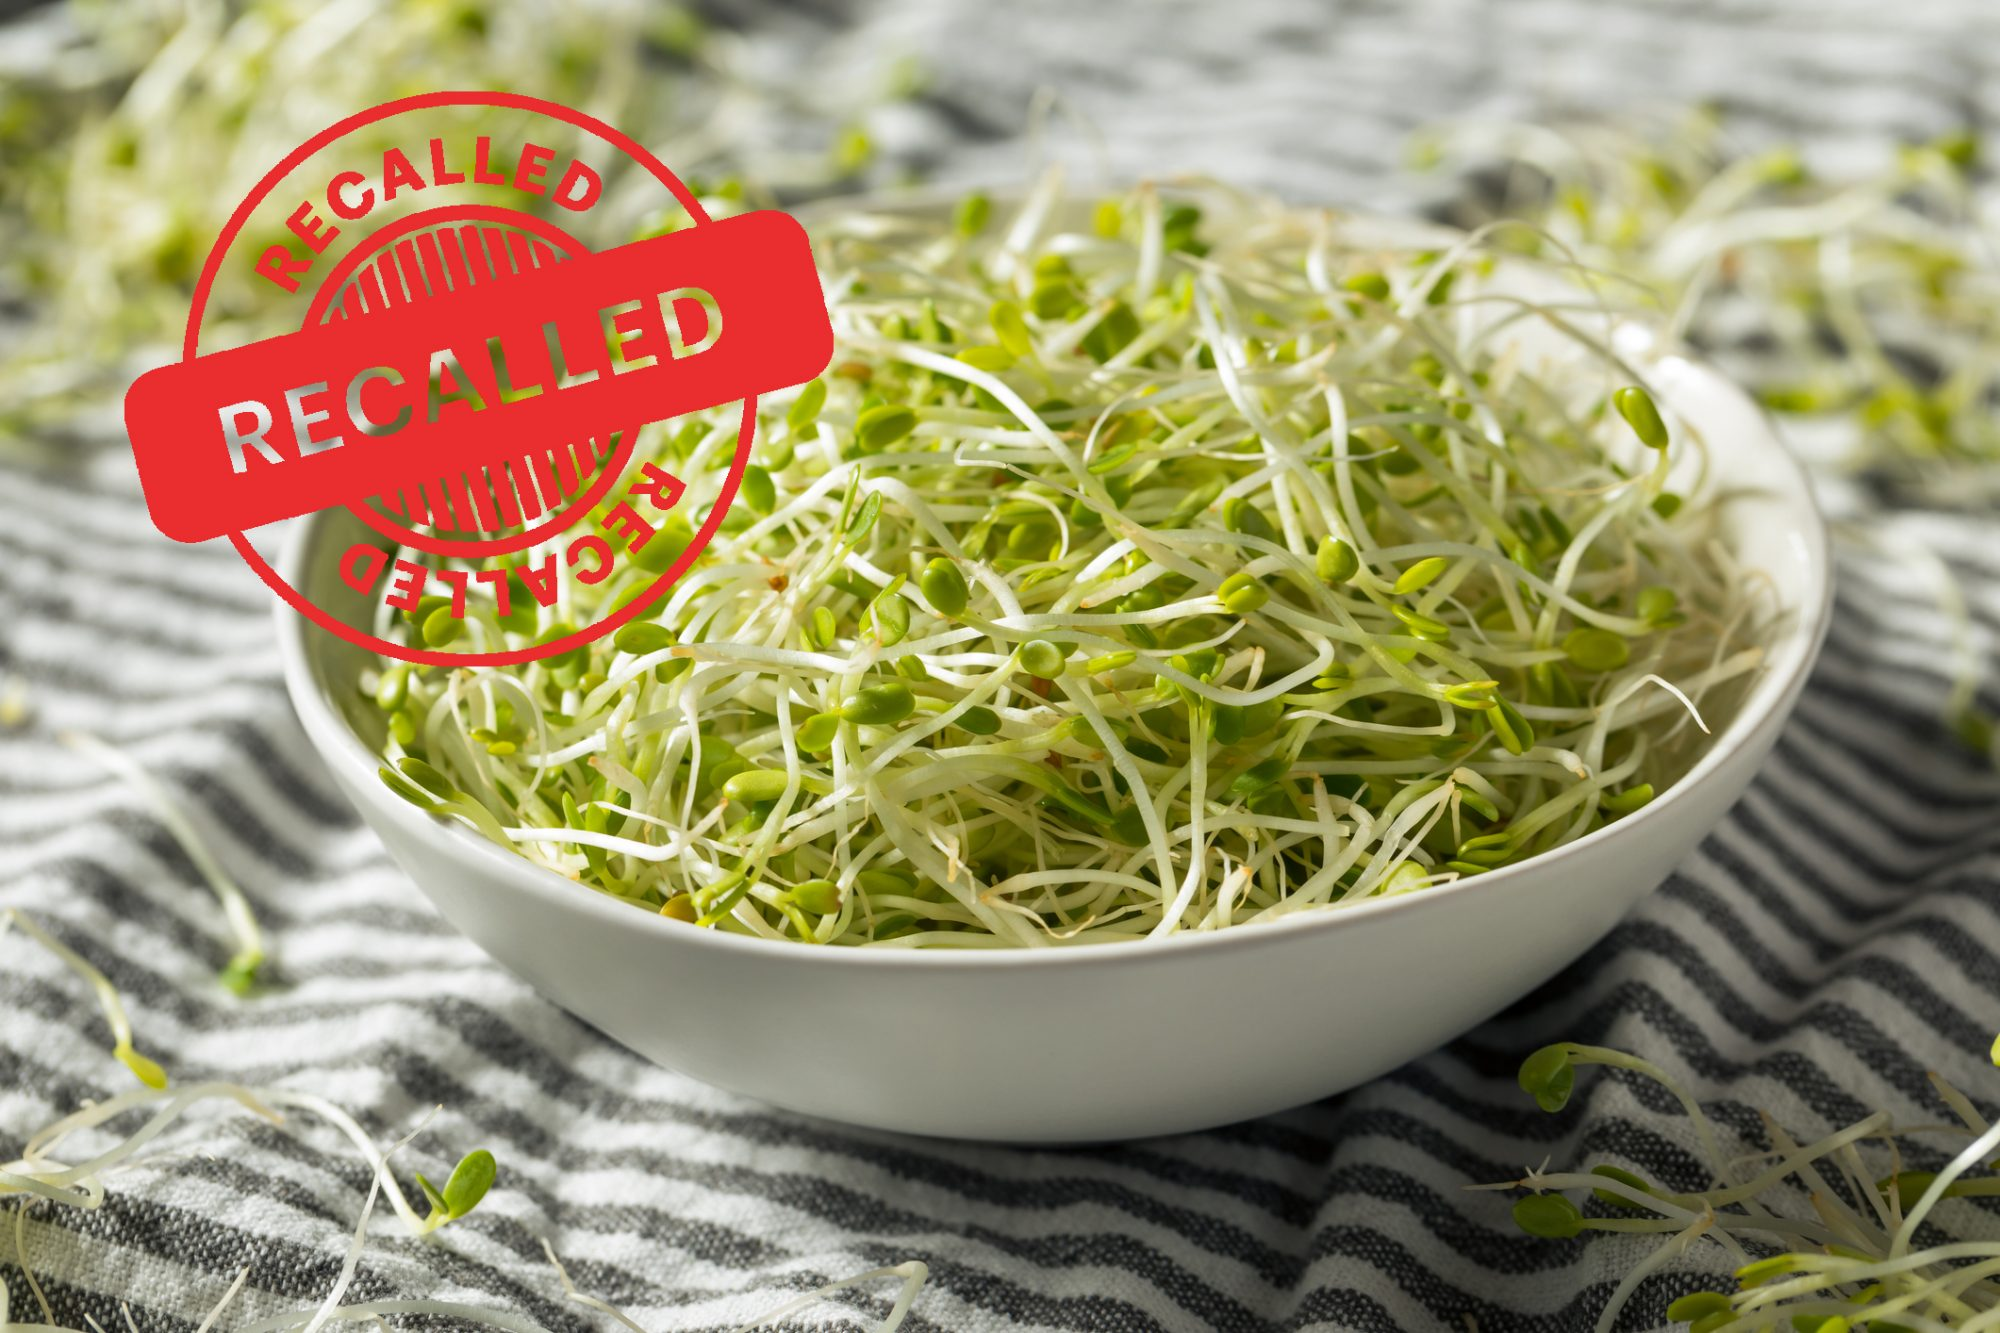 Raw Green Organic Clover Sprouts MIcrogreens